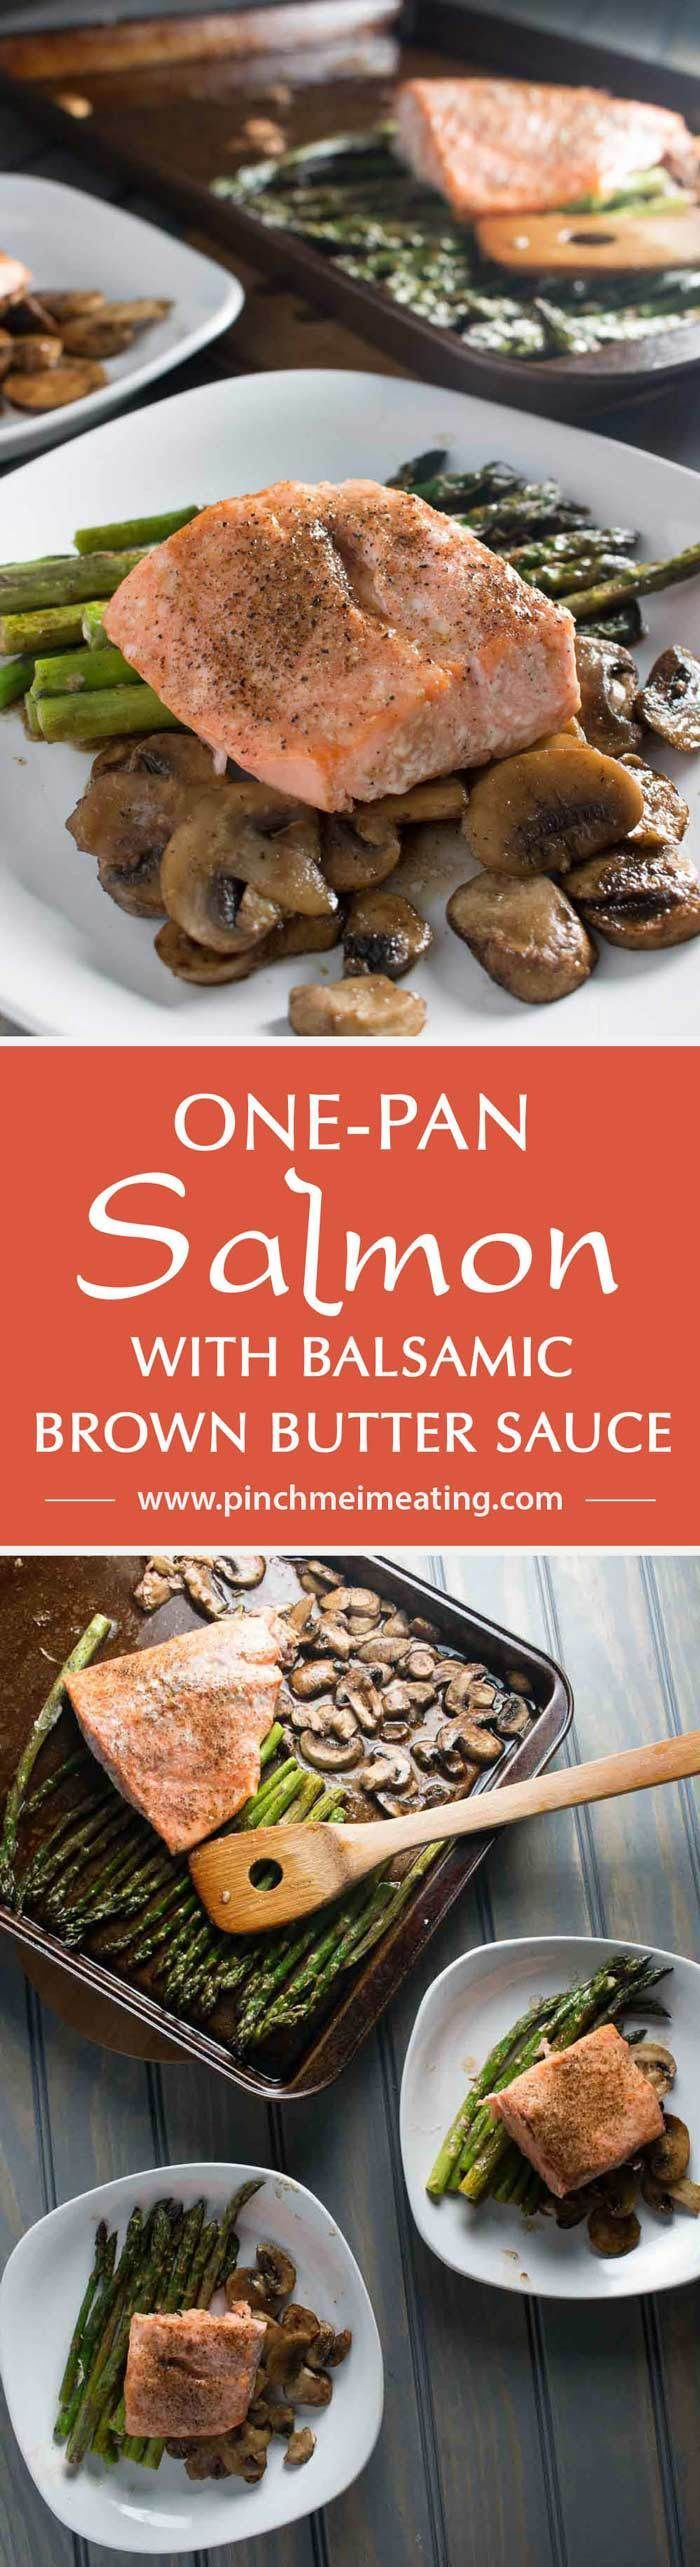 One-pan salmon with asparagus and mushrooms with balsamic brown butter sauce is the easiest, most delicious dinner - and it's ready in only 20 minutes! This is my new favorite meal! | www.pinchmeimeati...